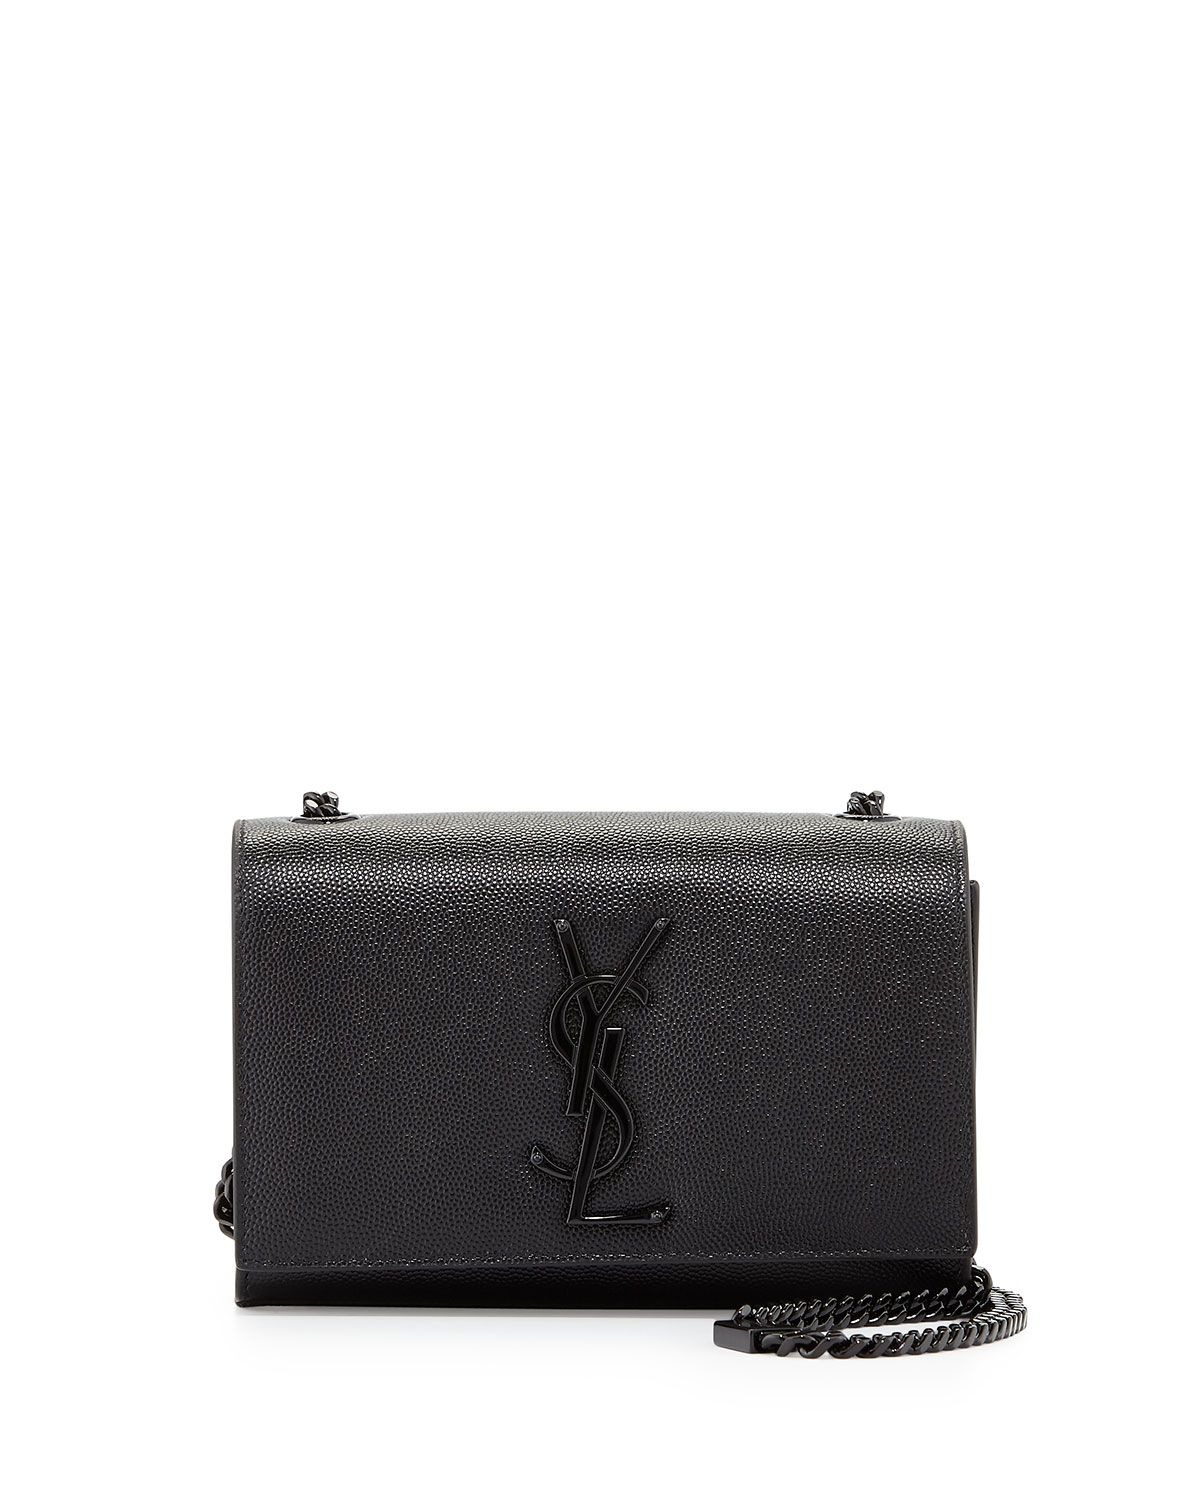 97b7d828e7f Yves Saint Laurent Kate Monogram Small Shoulder Bag